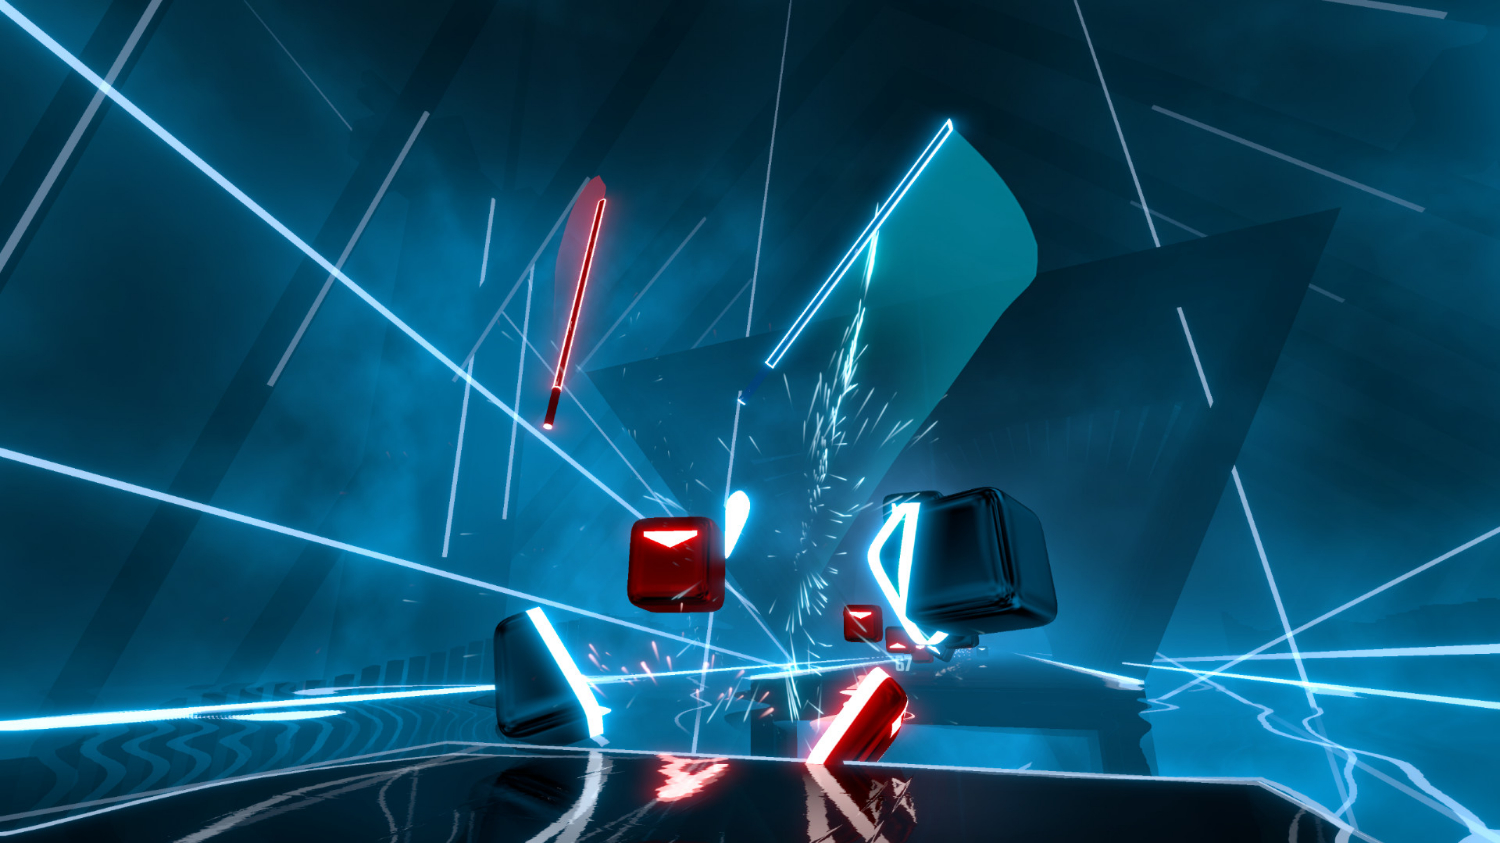 Beat Saber Is the Perfect Launch Game for Oculus Quest